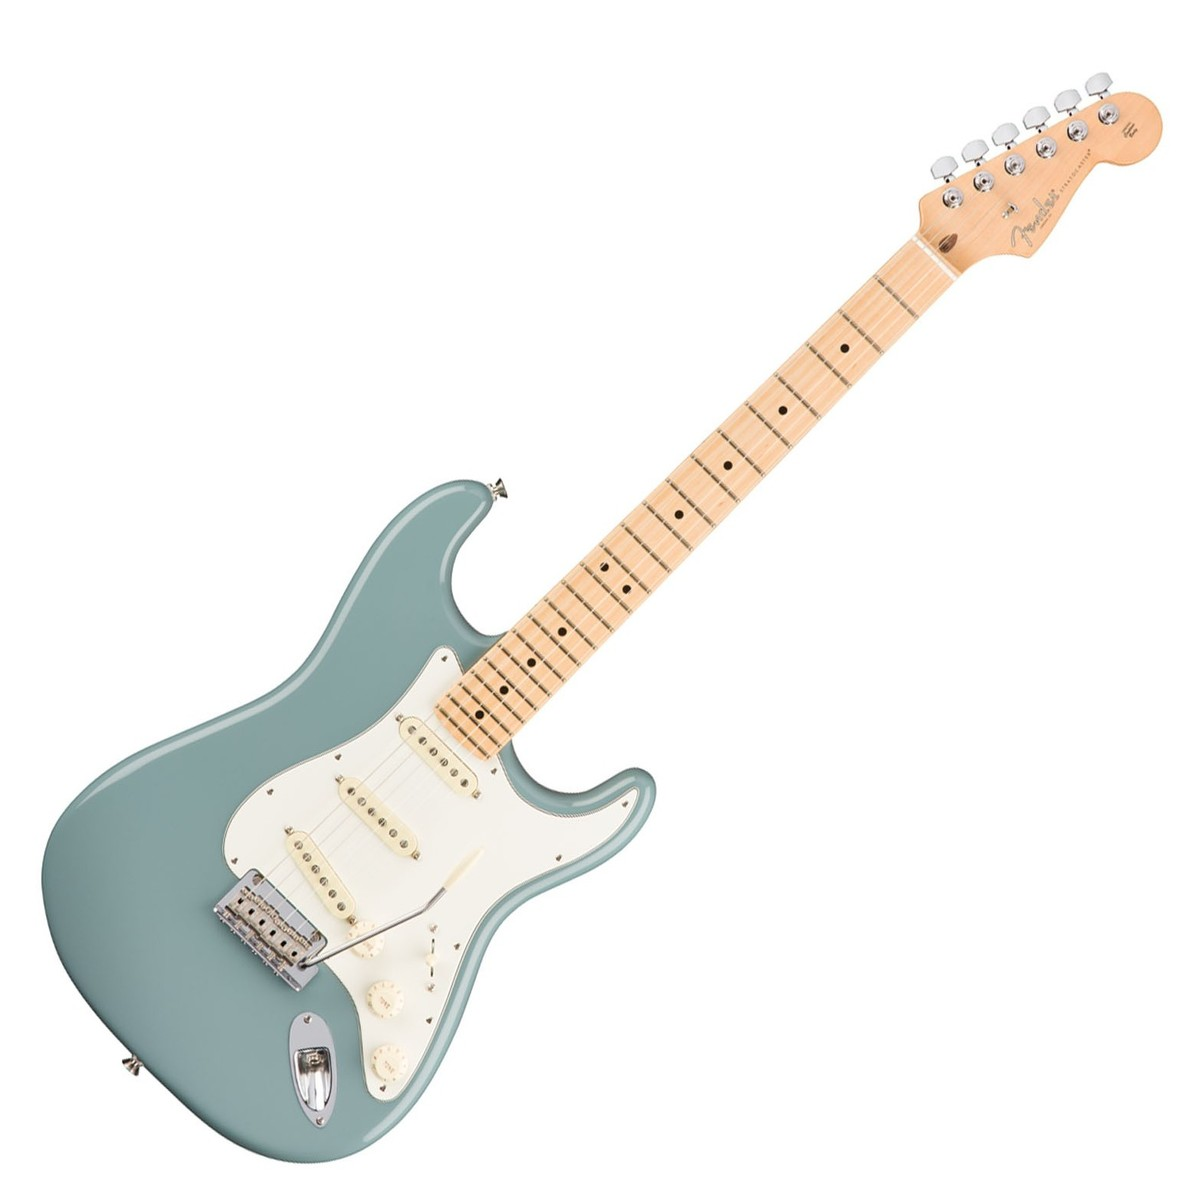 fender american professional stratocaster mn sonic grey at gear4music